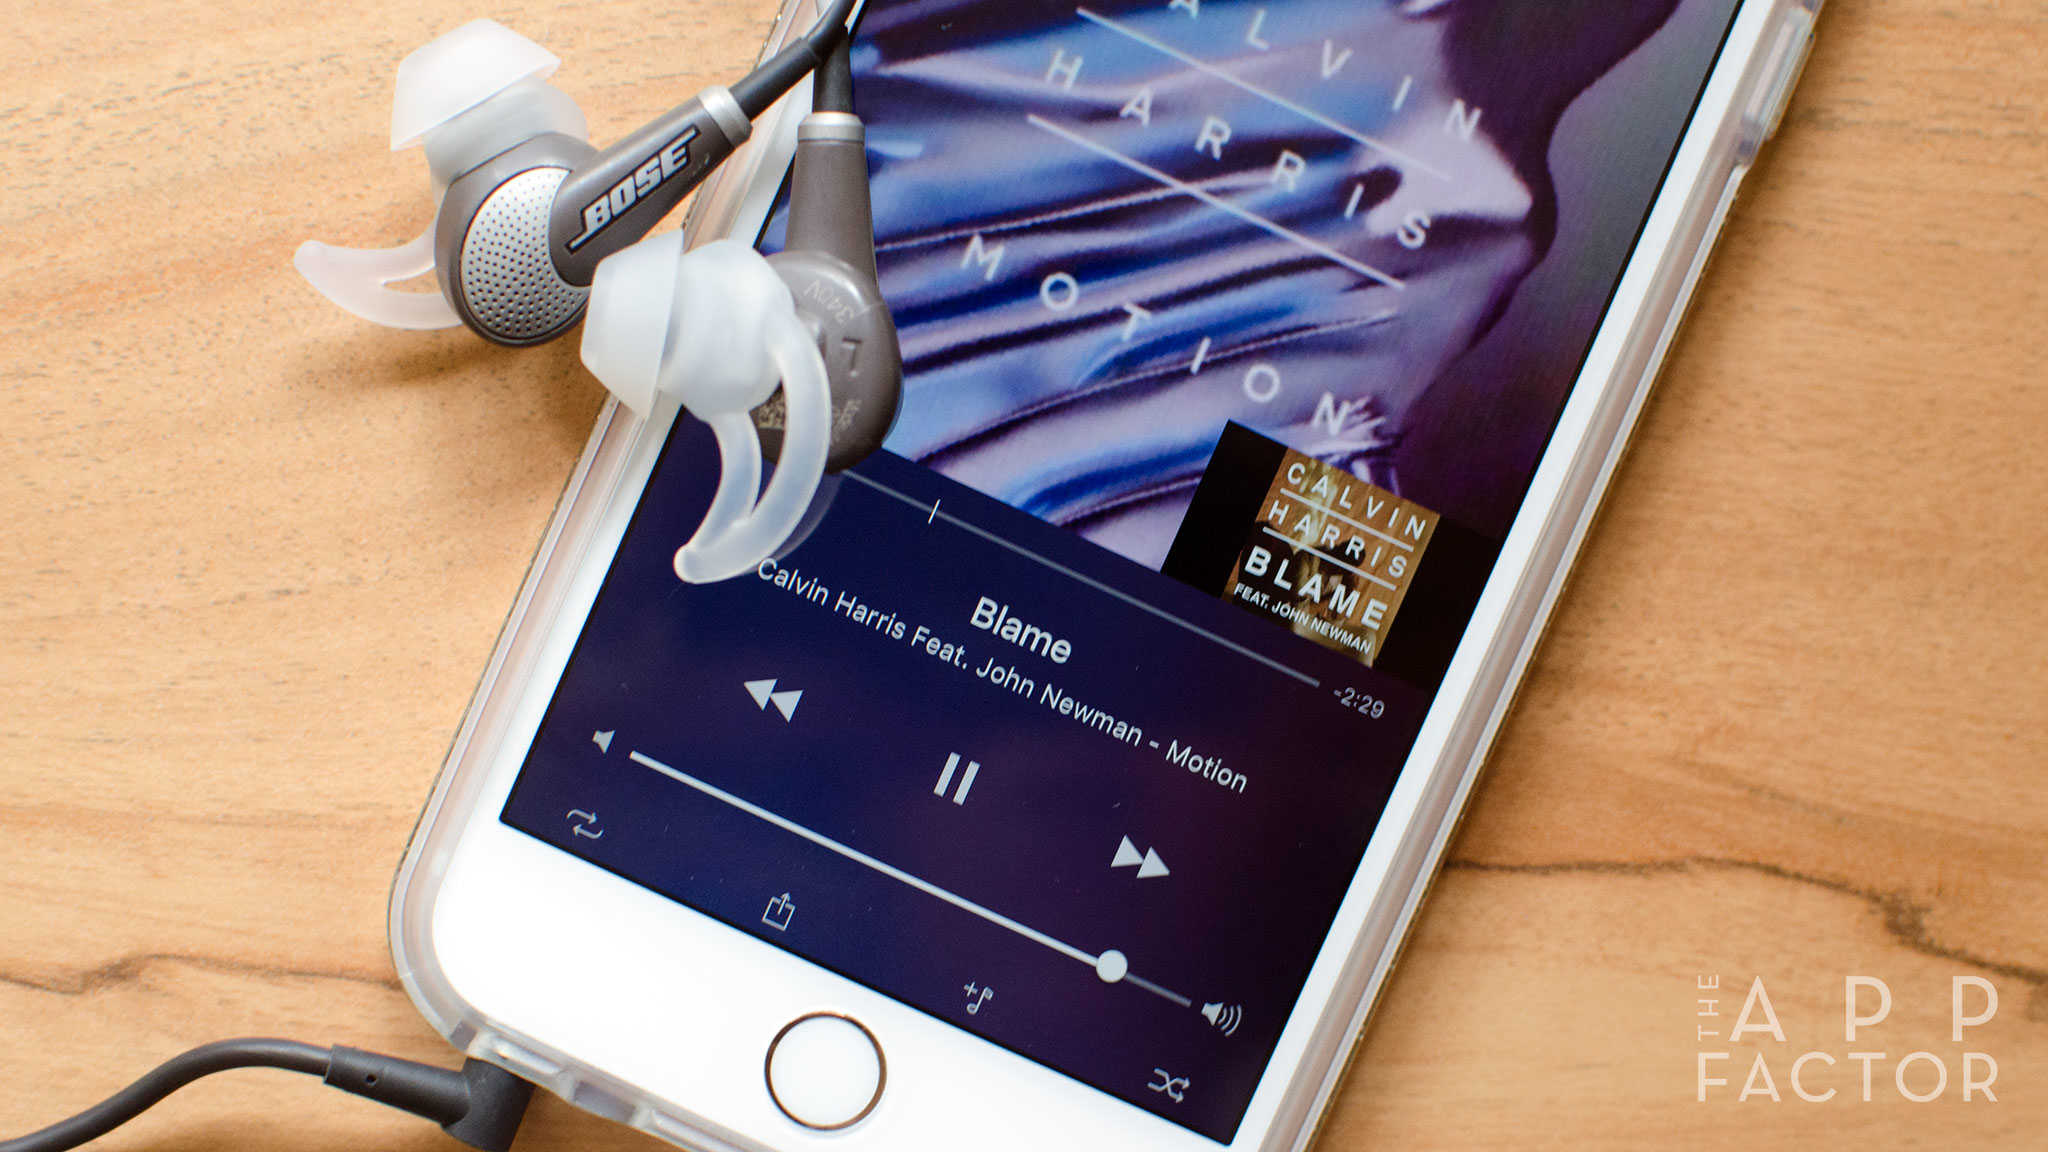 Want to enhance your Apple Music experience? Try these 4 apps!